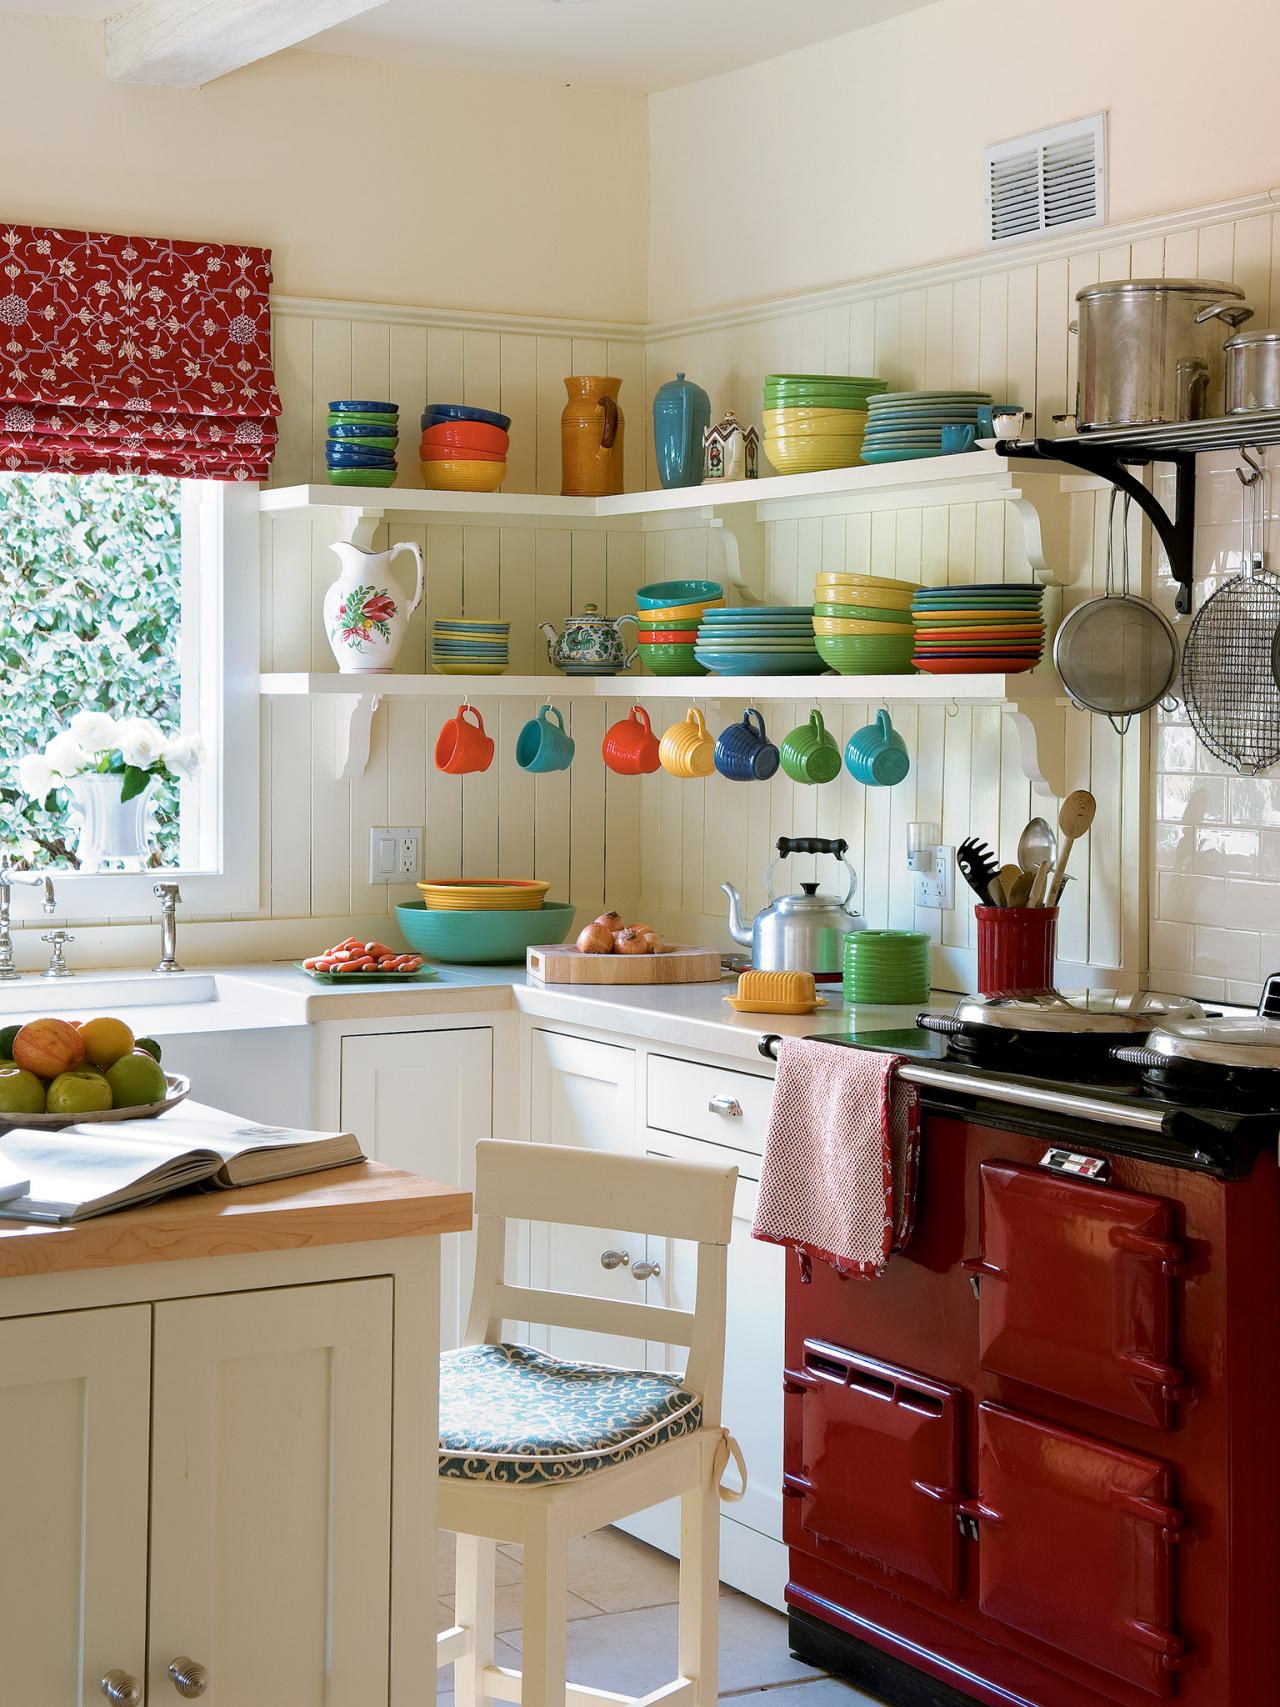 50 Best Small Kitchen Ideas and Designs for 2020 on Best Small Kitchens  id=85399